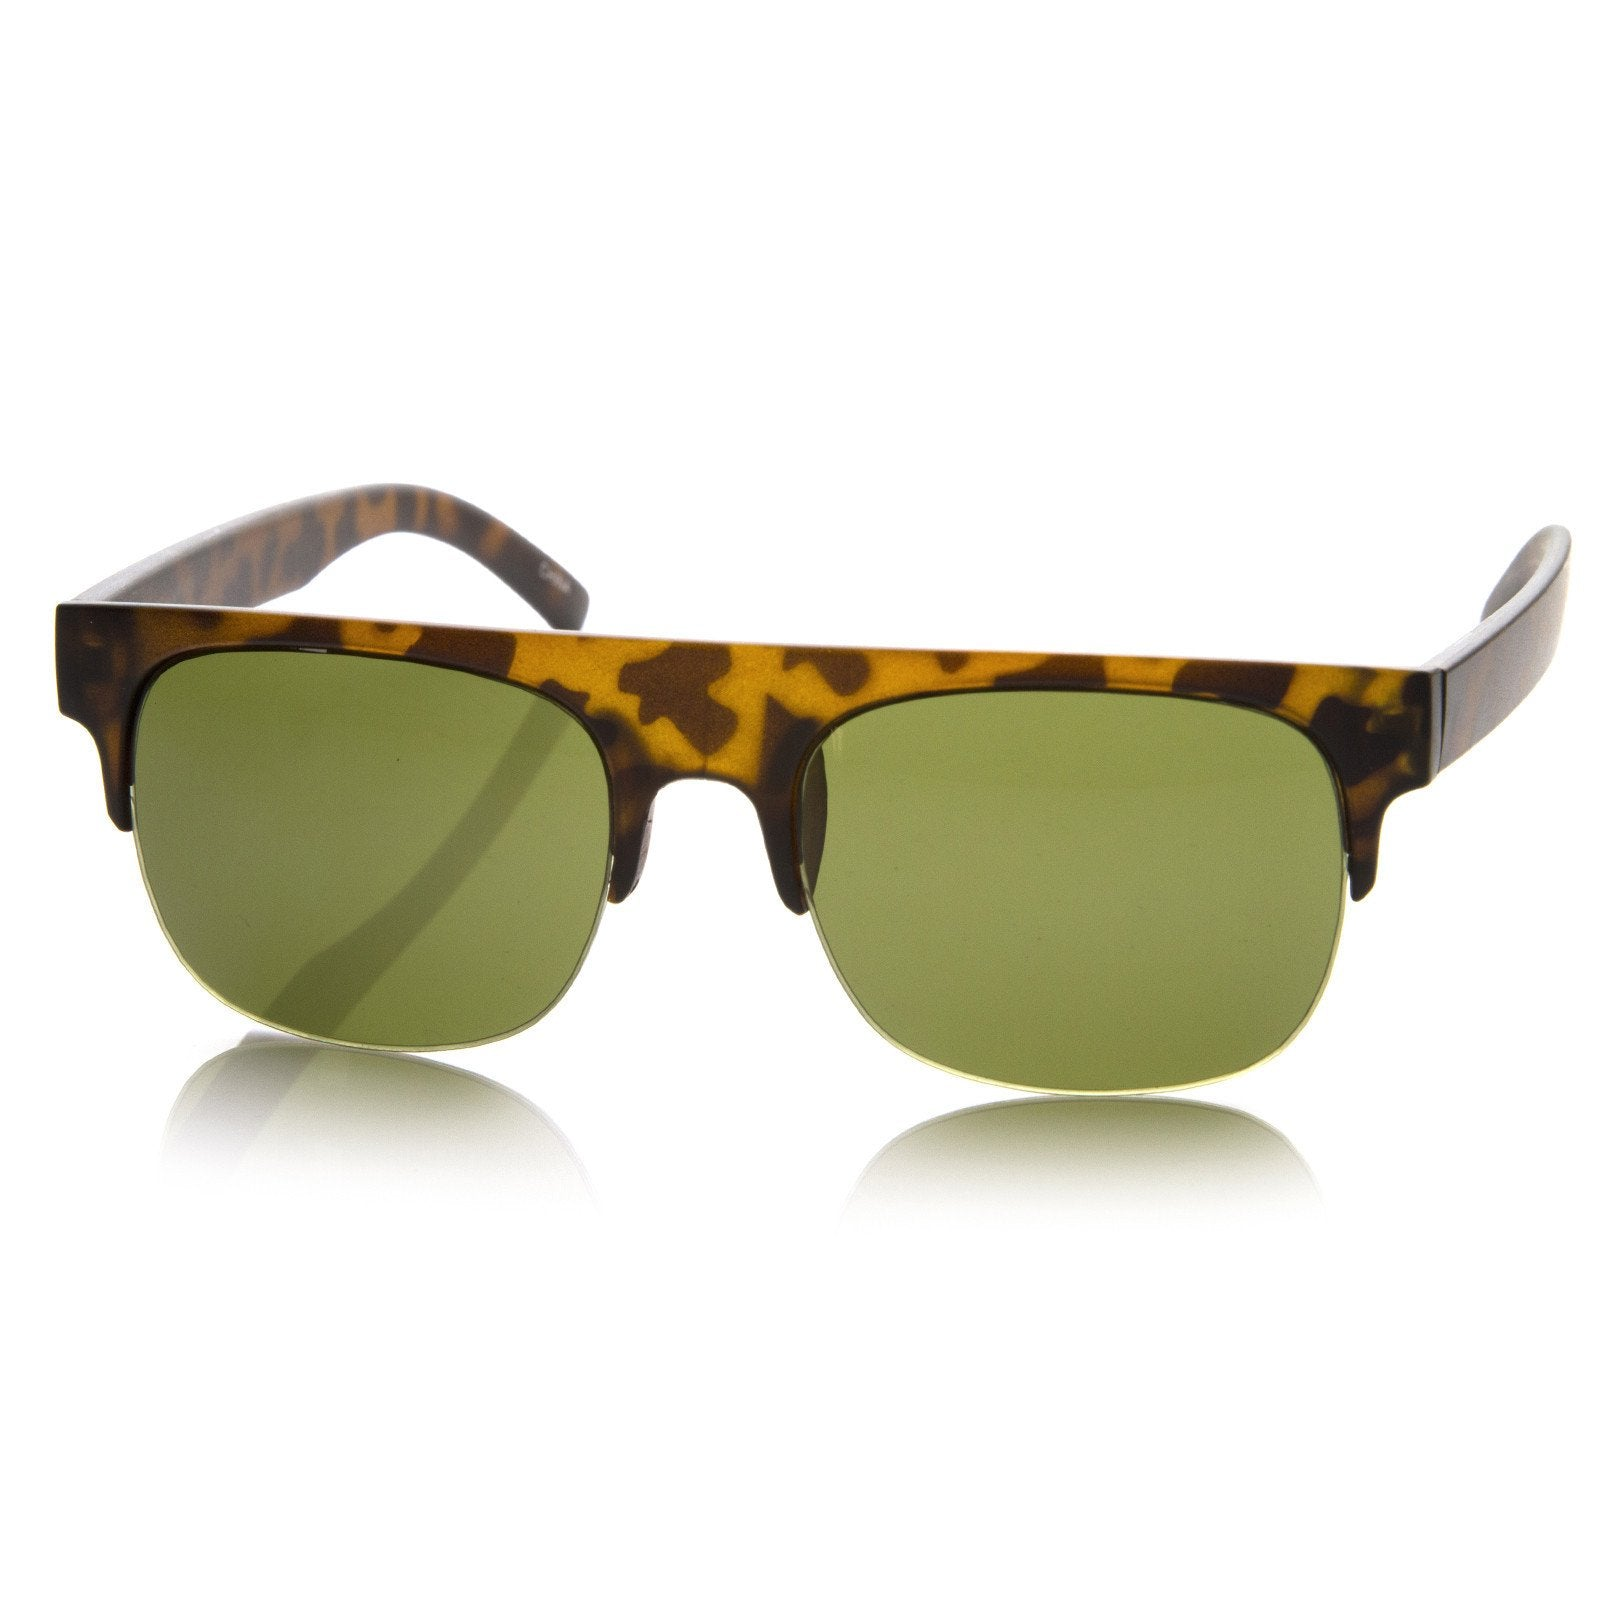 0194e8ed6cb7 Retro Modern Super Flat Top Horned Rim Sunglasses 8694 · Gunmetal ·  Tortoise Green